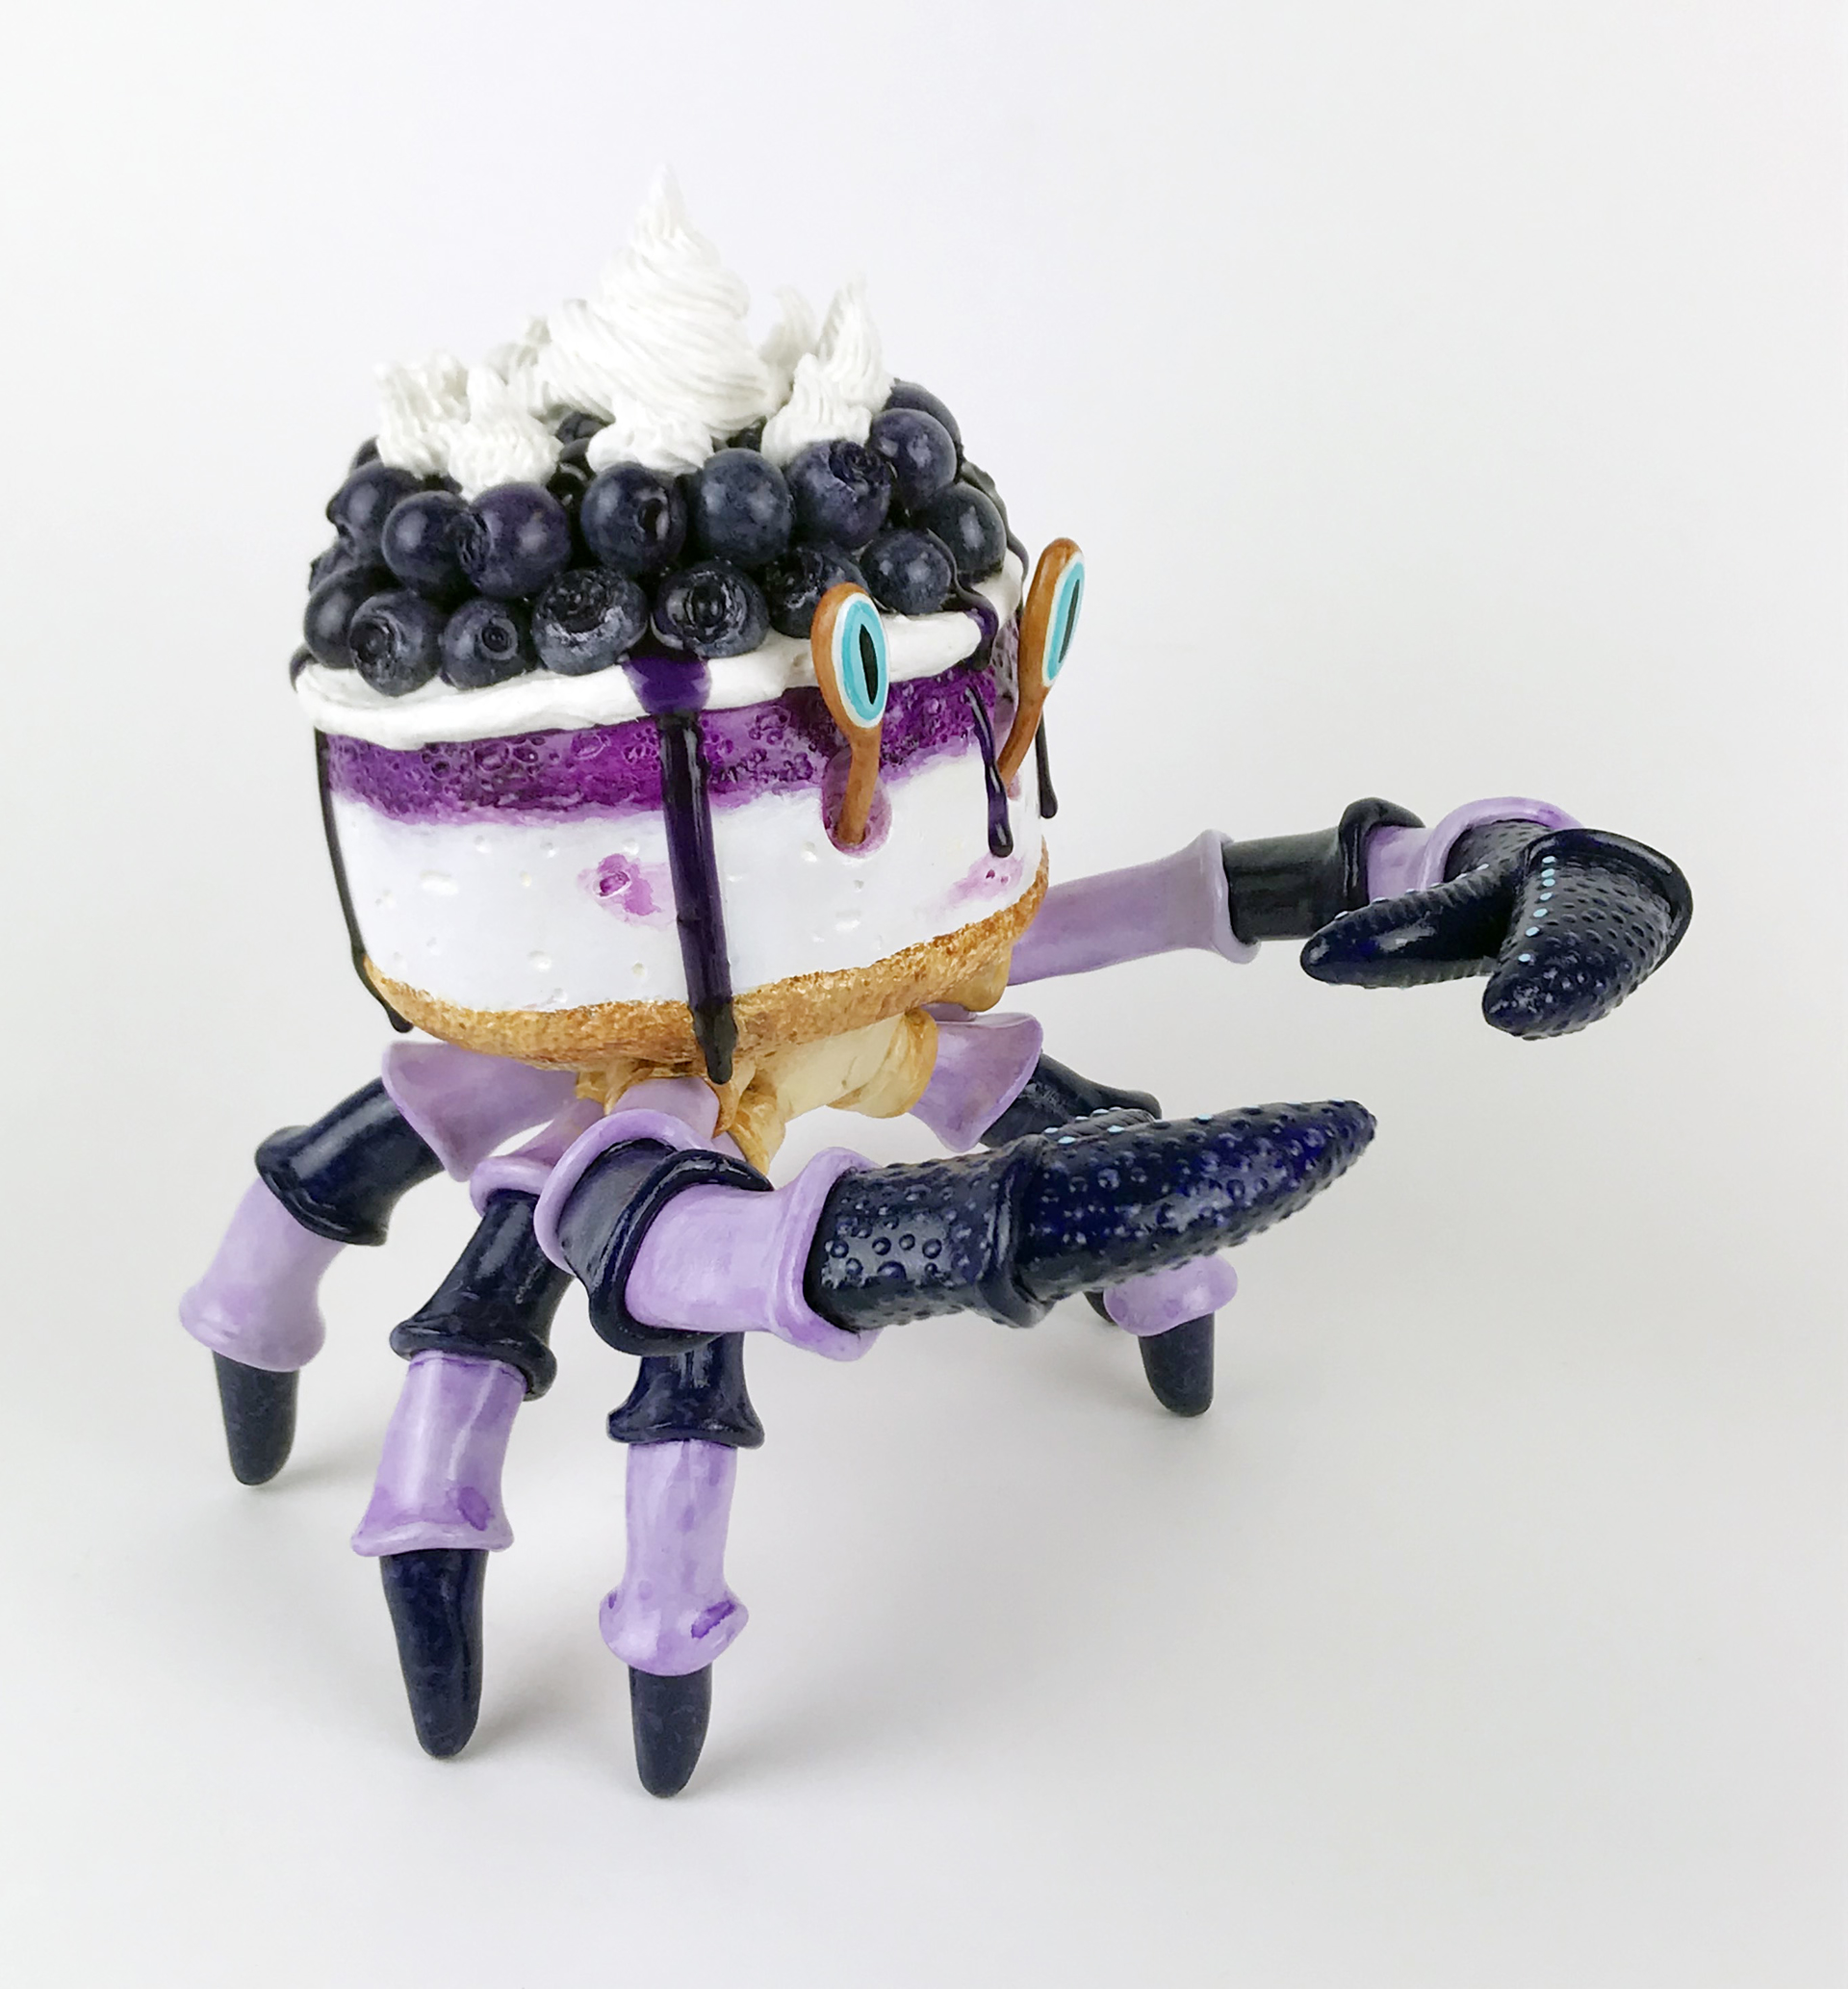 Blueberry Cheese Crabcake by Corina St. Martin